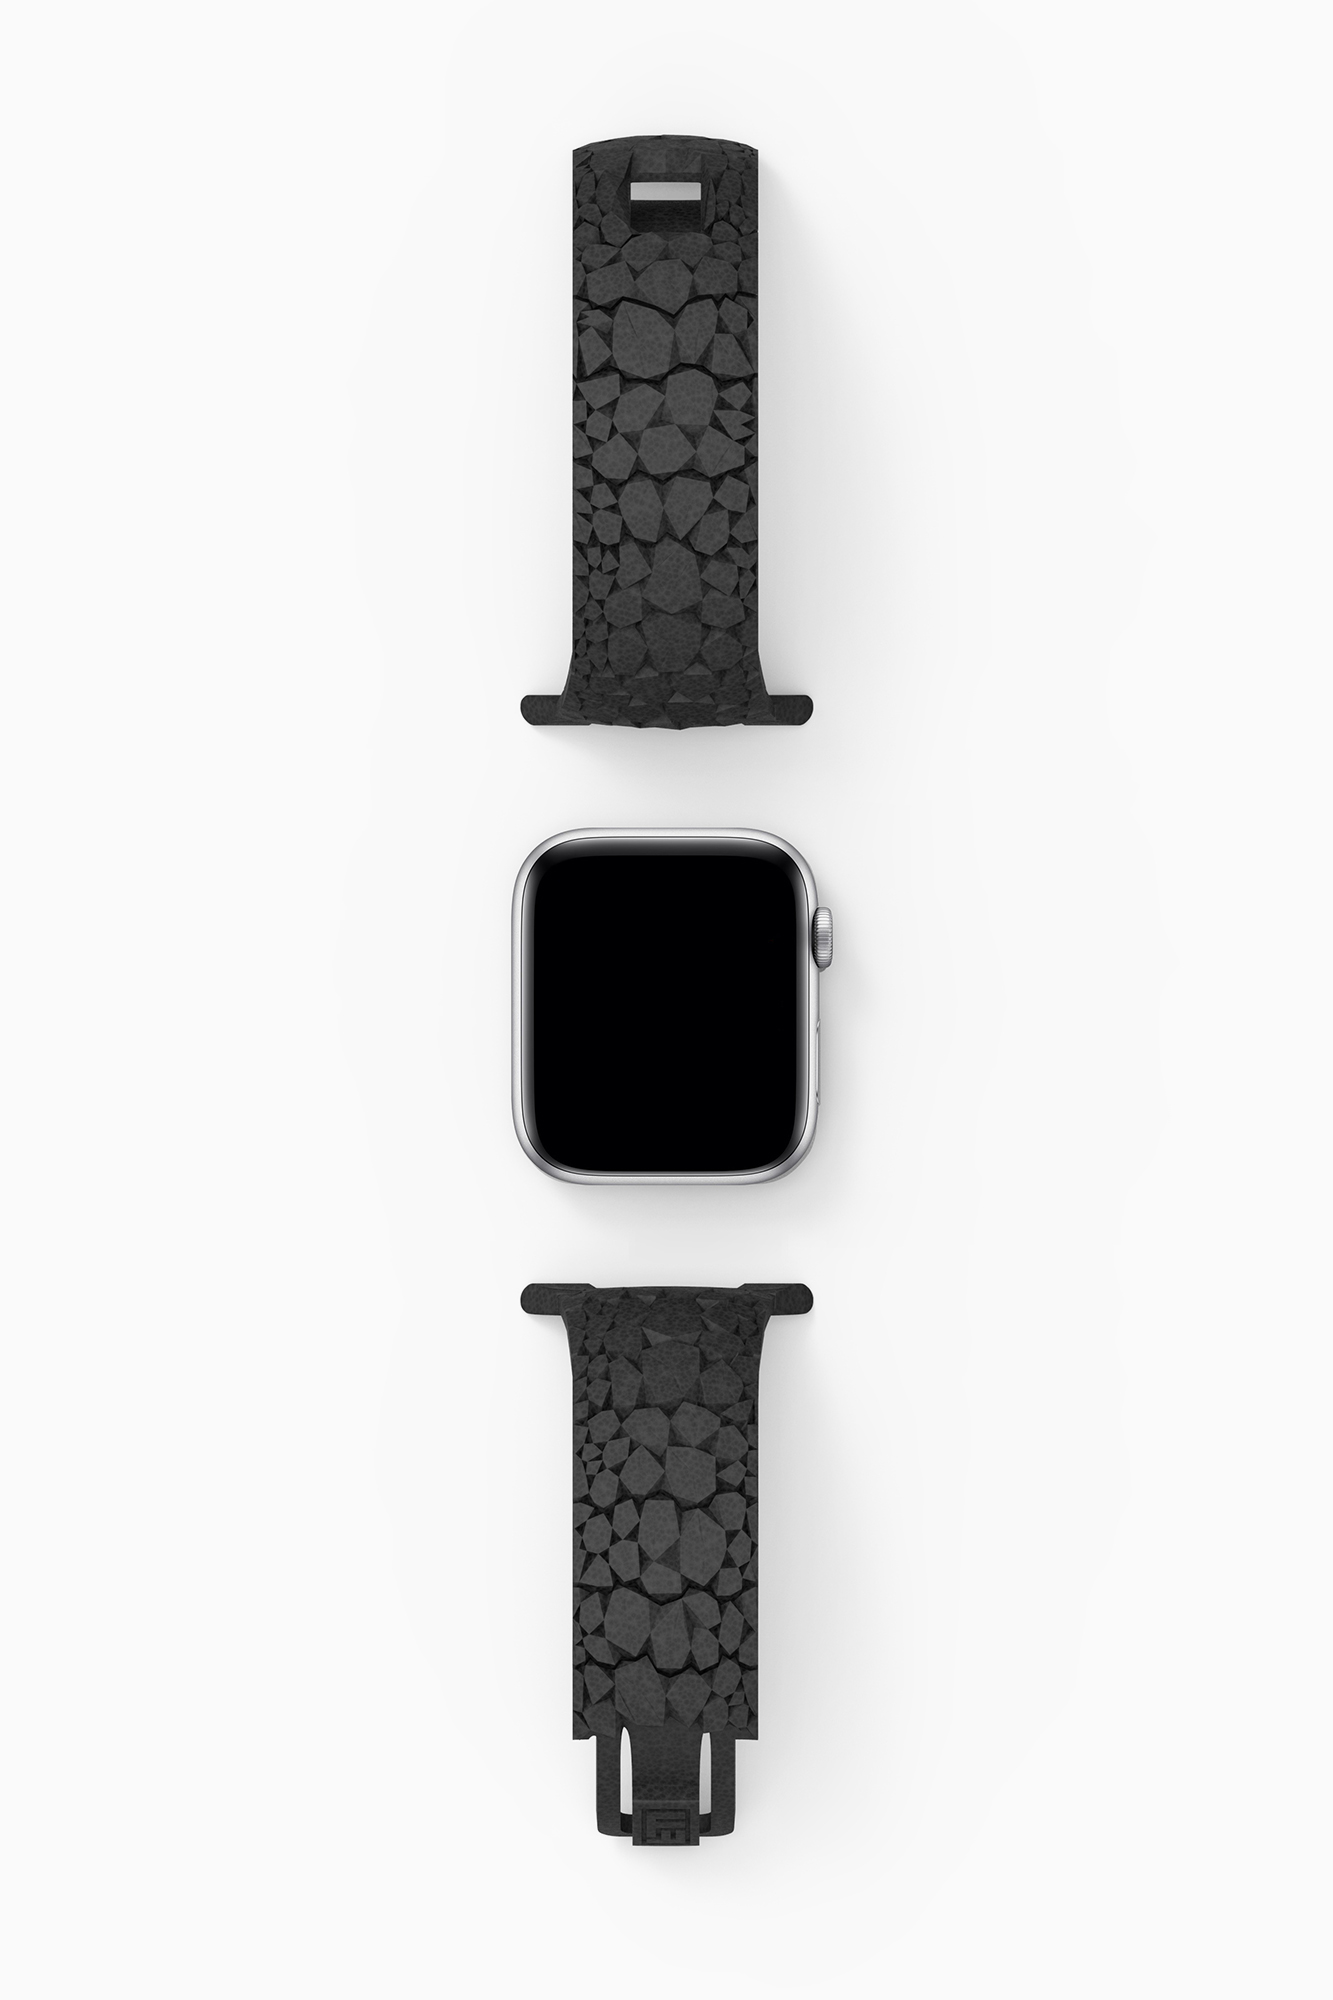 Assembly | Freshfiber Apple Watch Bands, Design by Matthijs Kok for Freshfiber